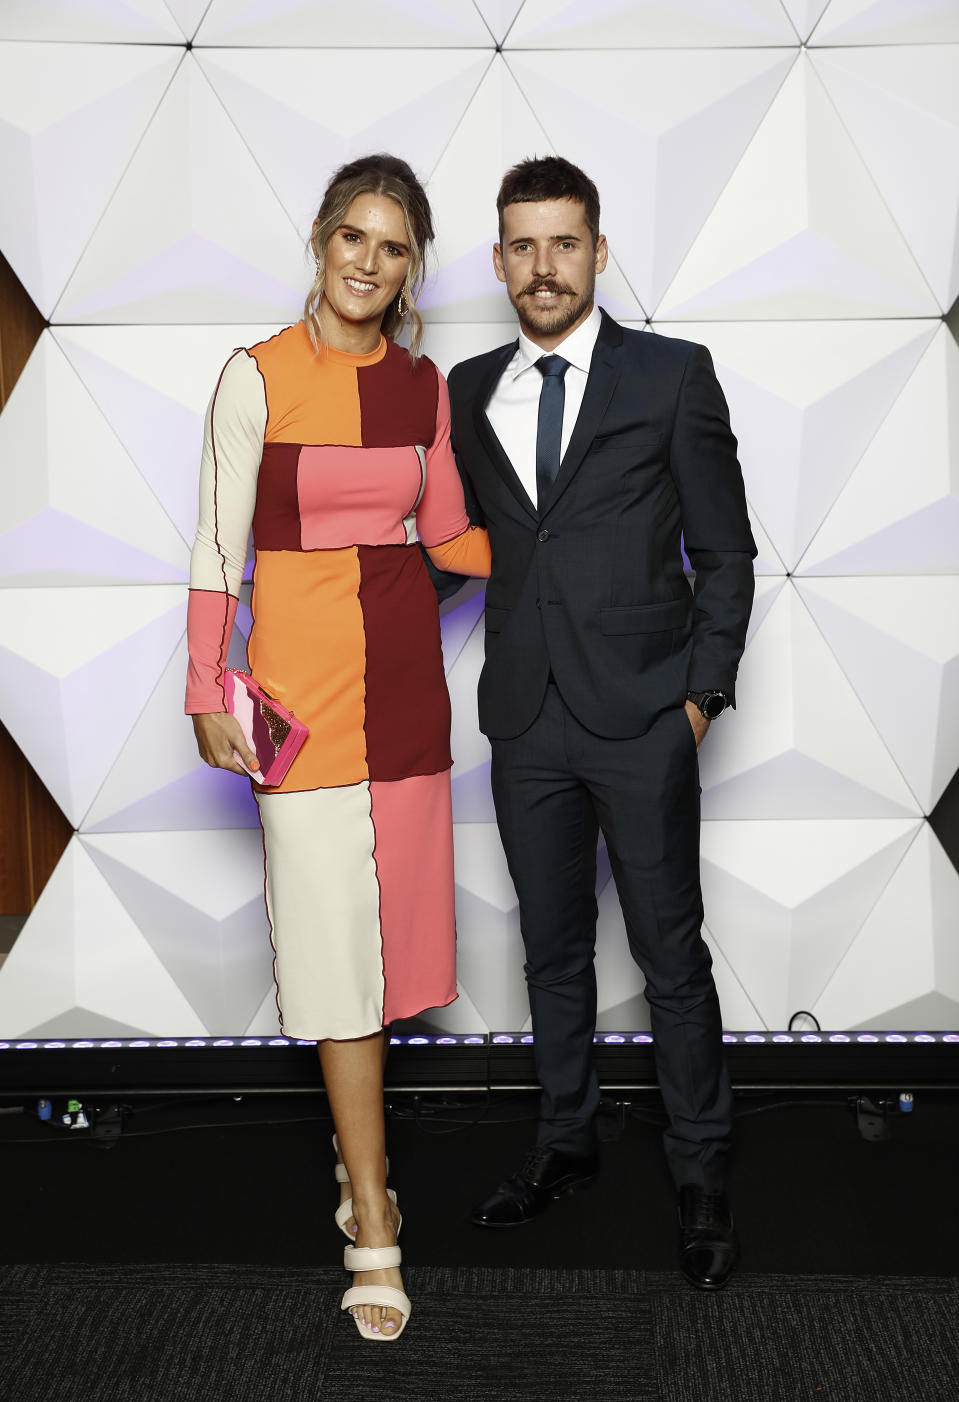 Jake Lloyd of the Swans and partner Zoe Heard attend the Sydney Brownlow Medal Function at the Sydney Cricket Ground during the 2020 AFL Brownlow Medal count on October 18, 2020 in Sydney, Australia.